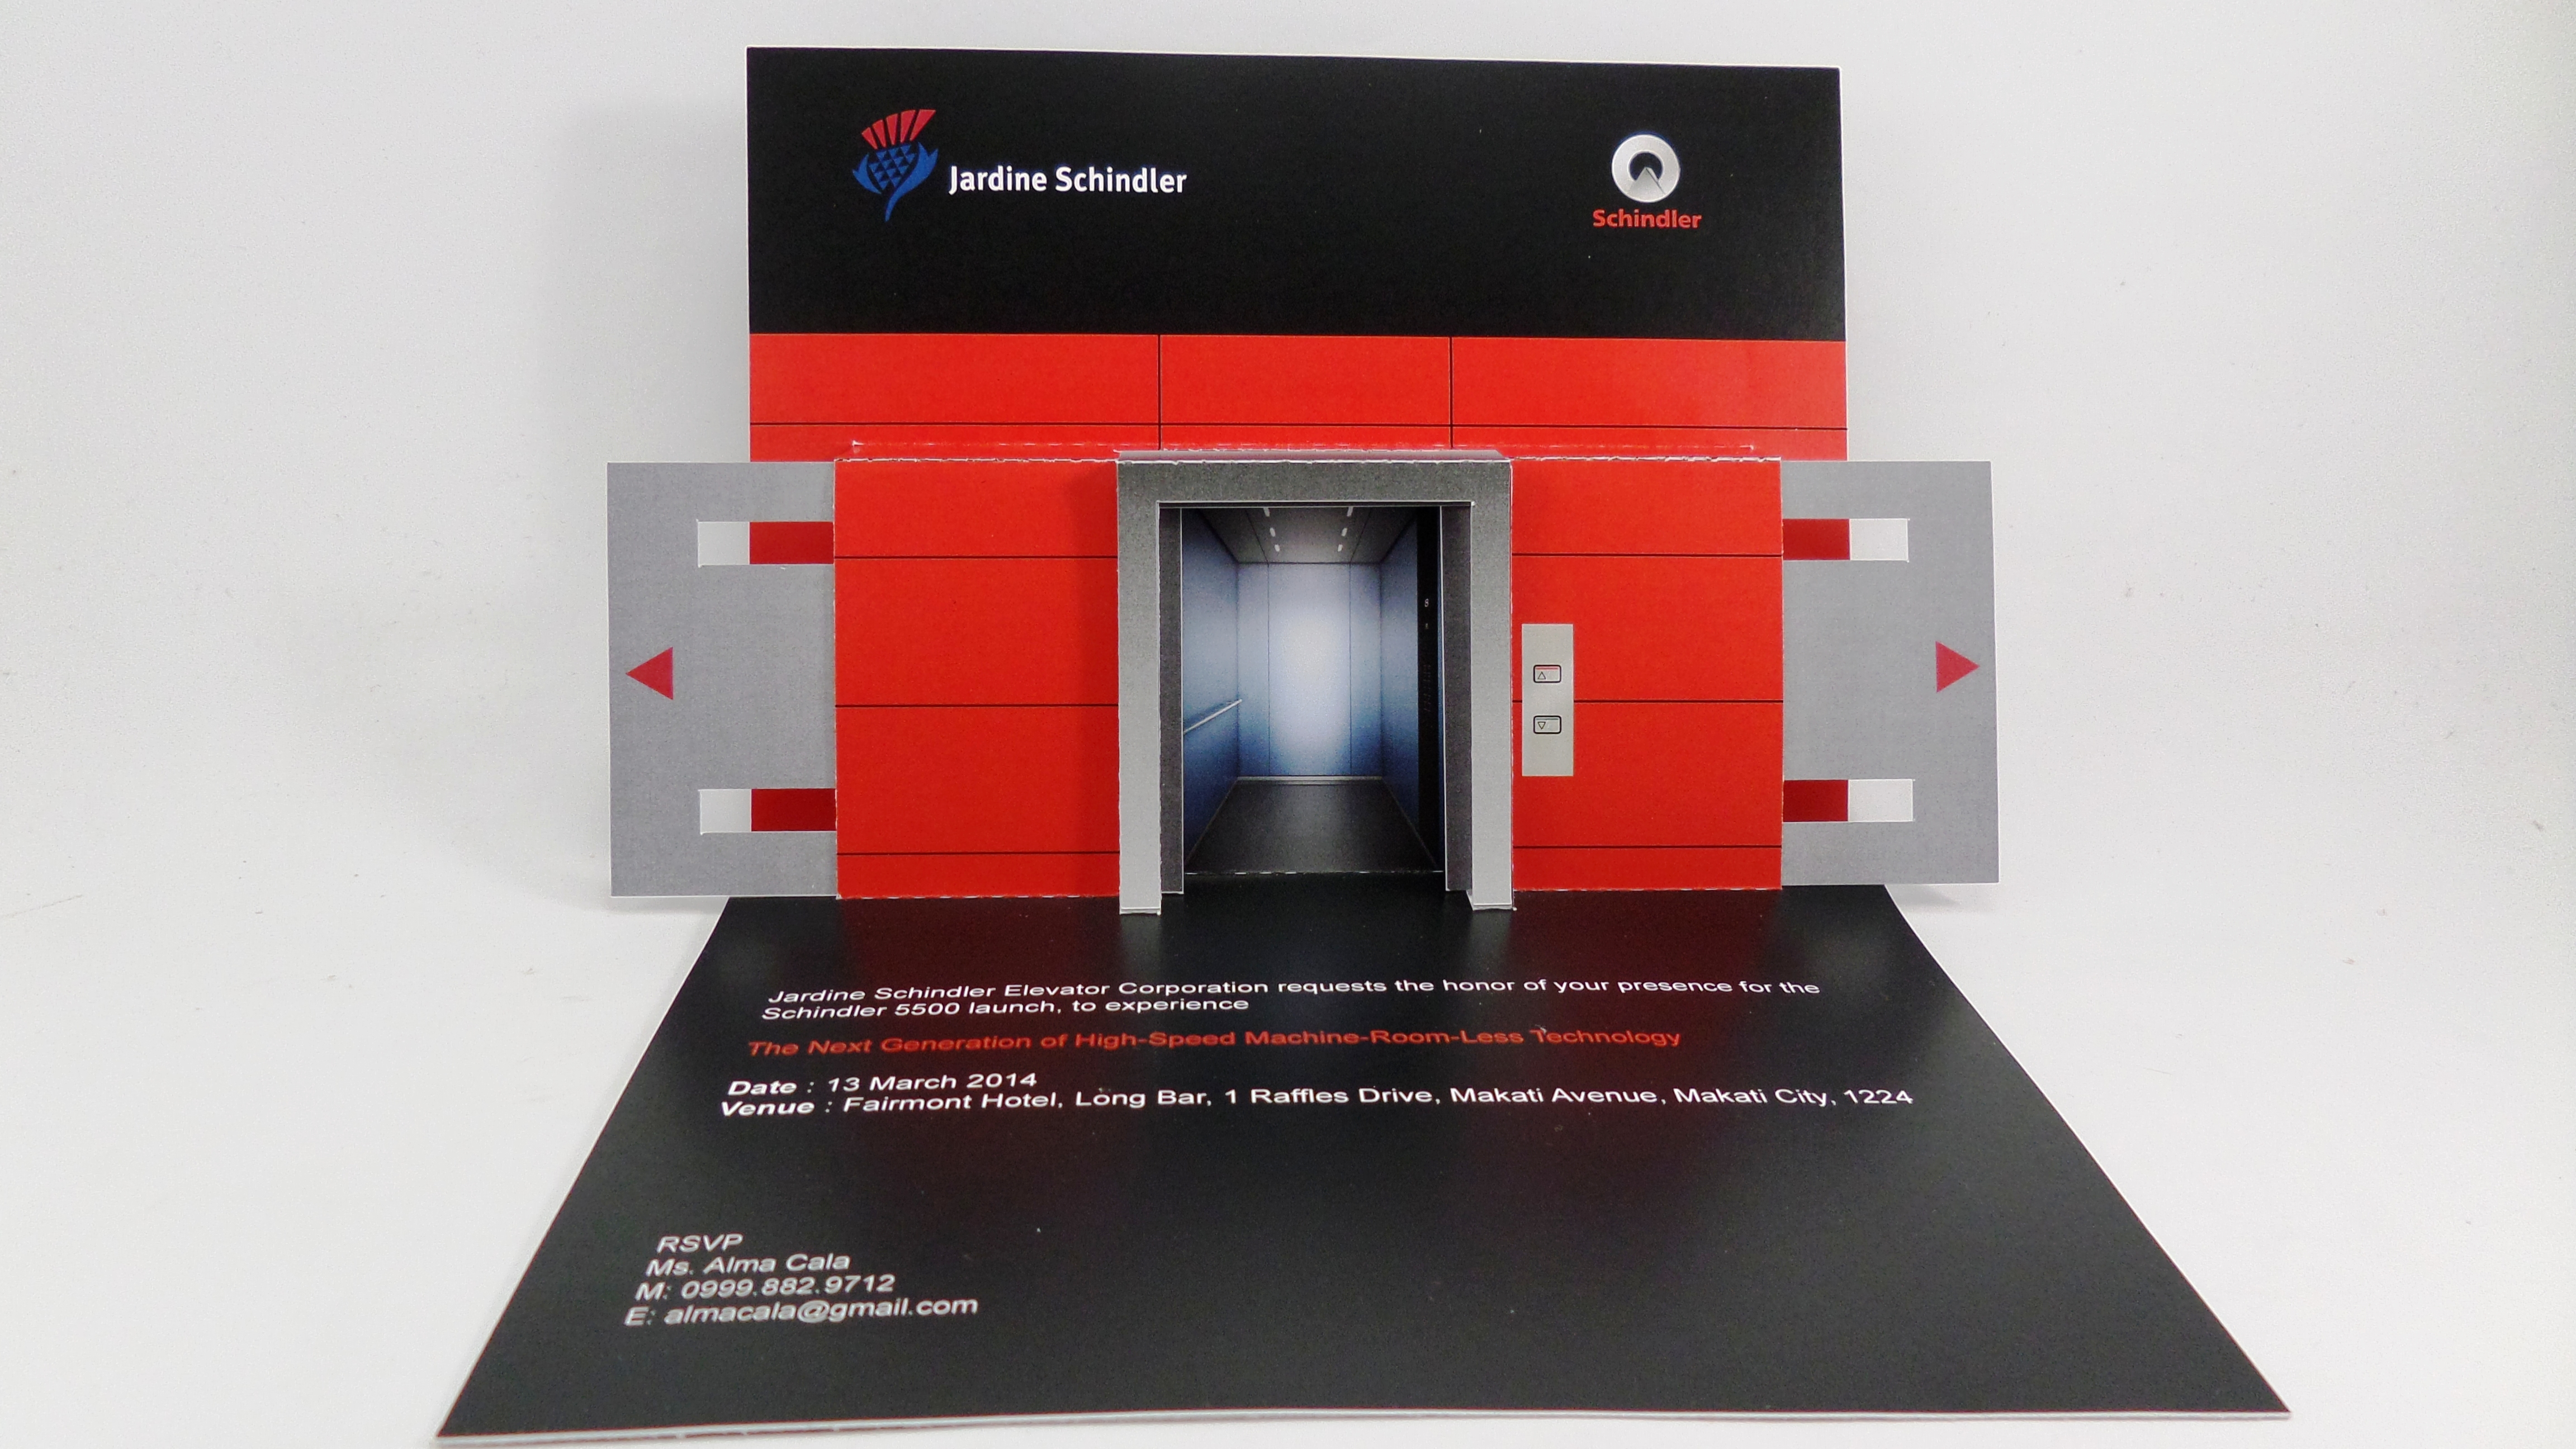 3D Pop Up Card for Product Launch | Pop Up Occasions